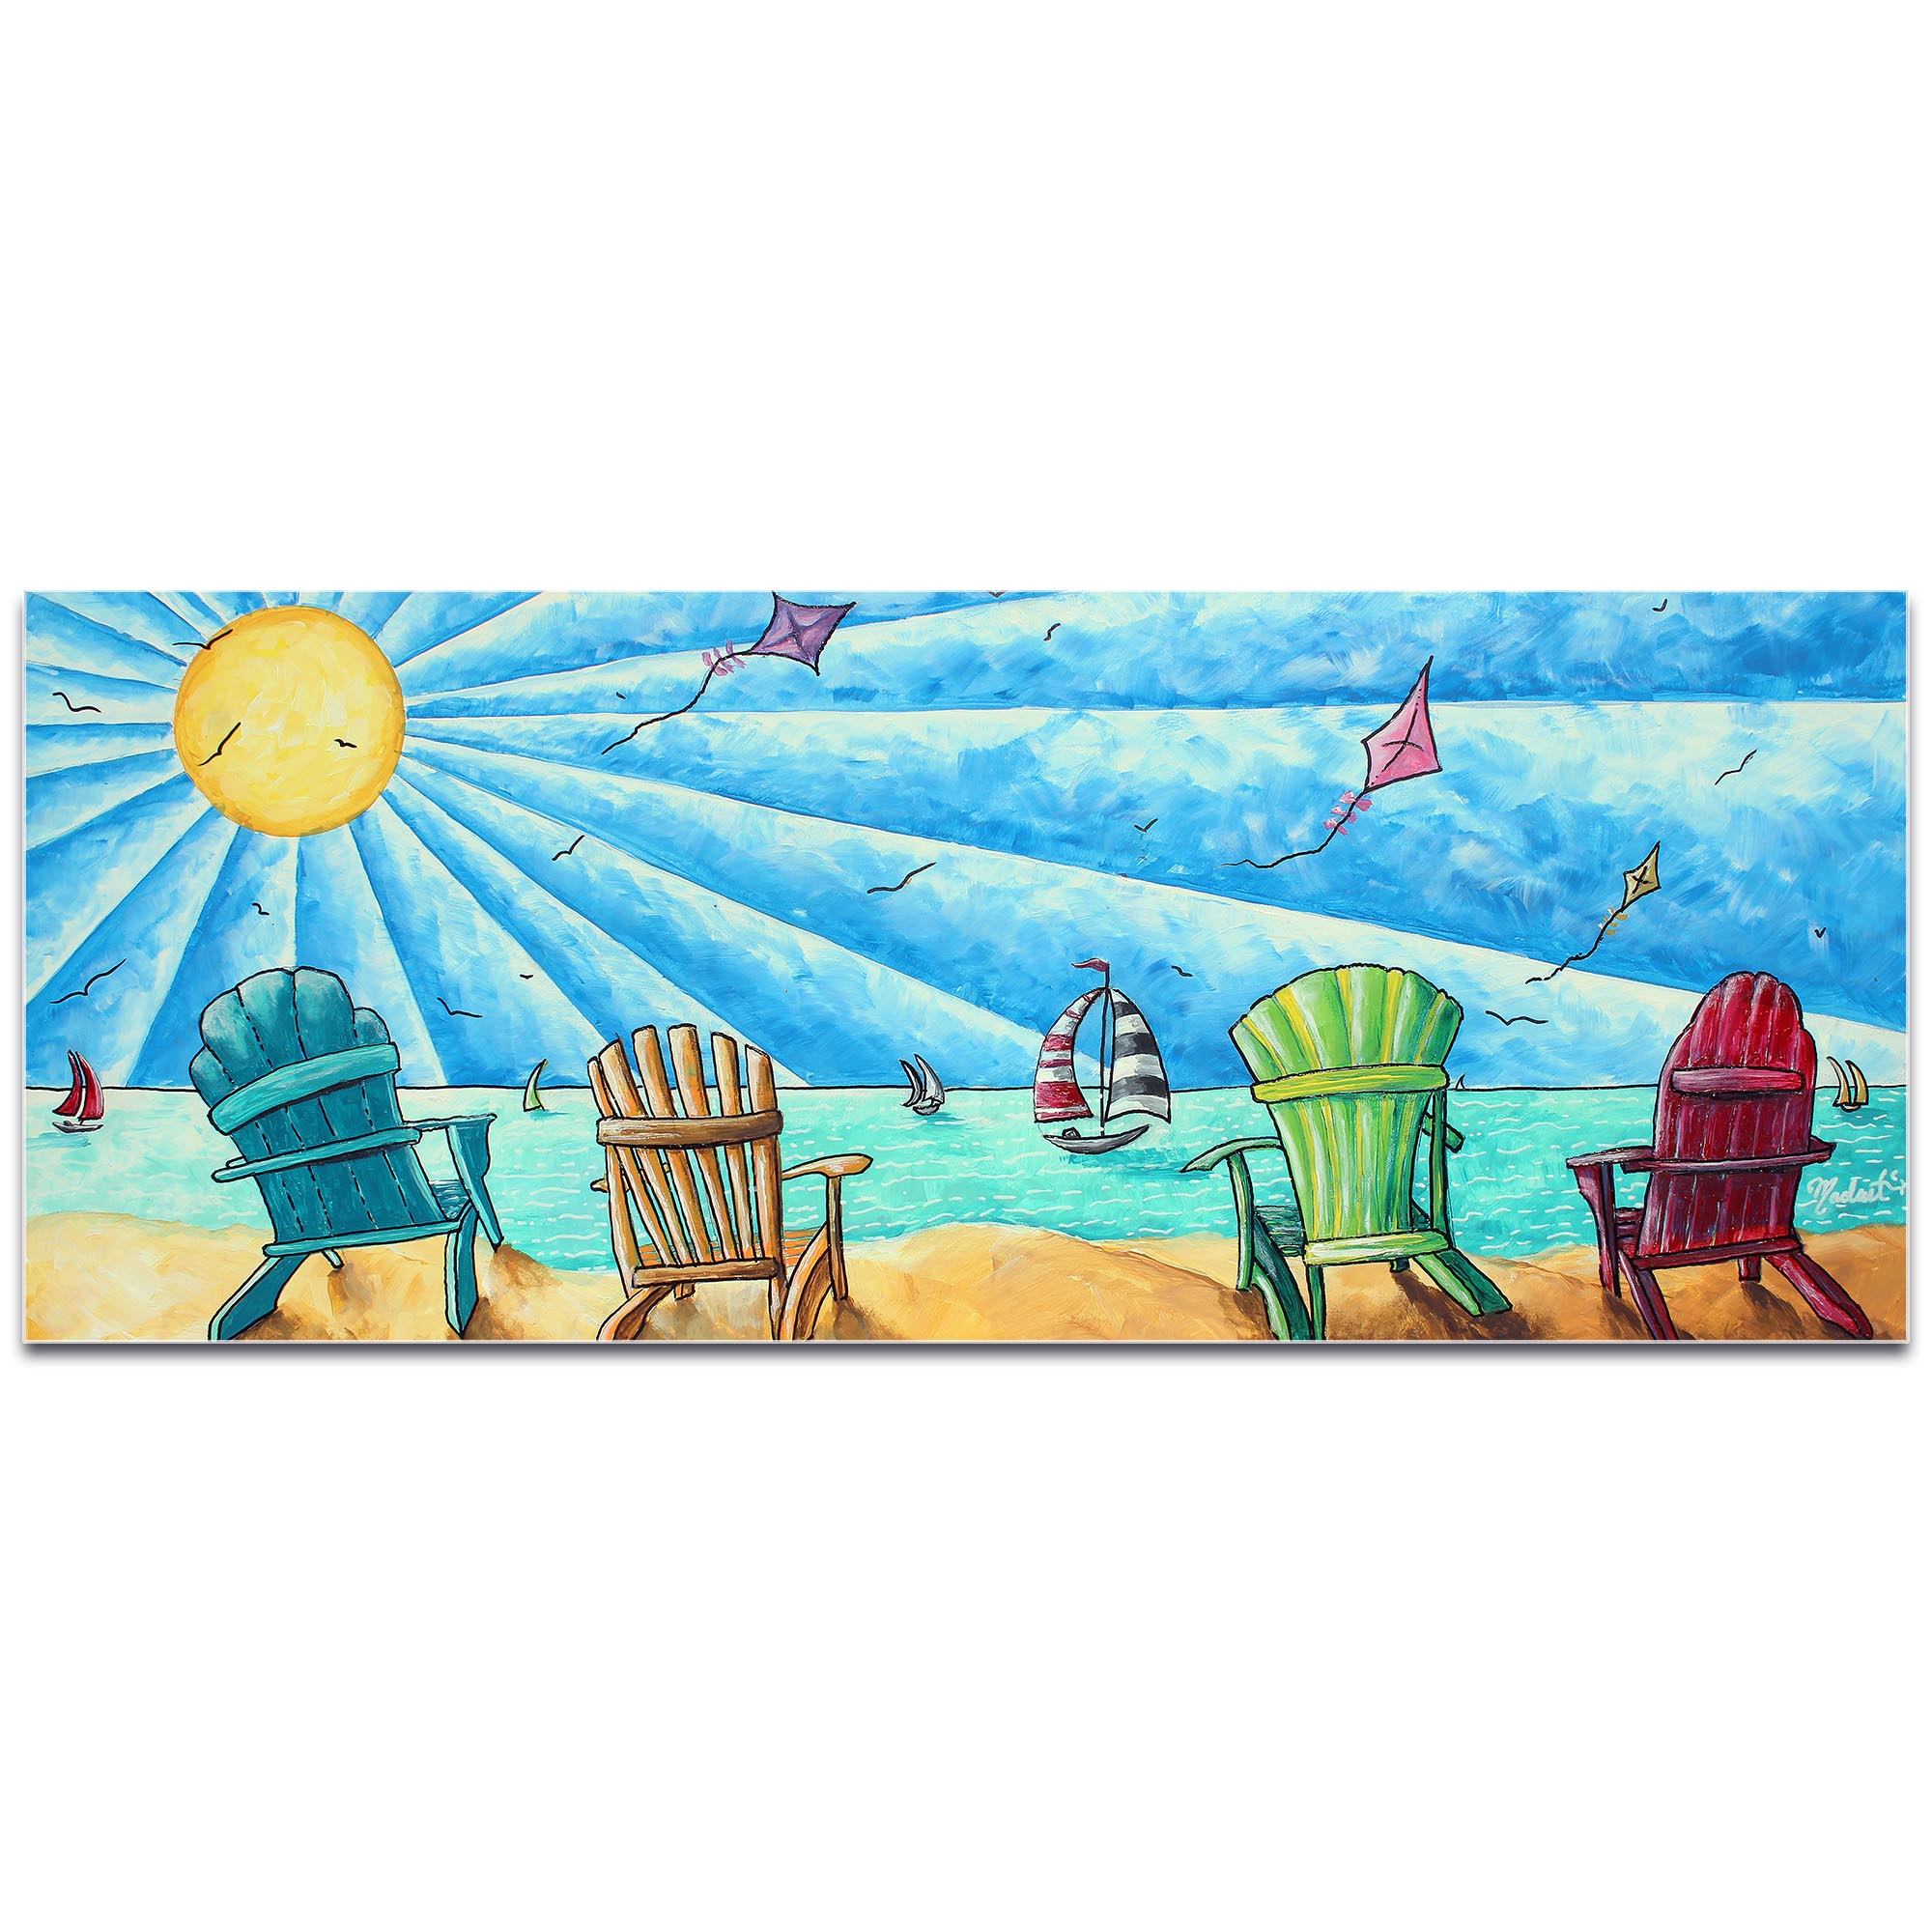 Beach Painting 'Beach Life v1' - Tropical Wall Art on Metal or Acrylic - Image 2